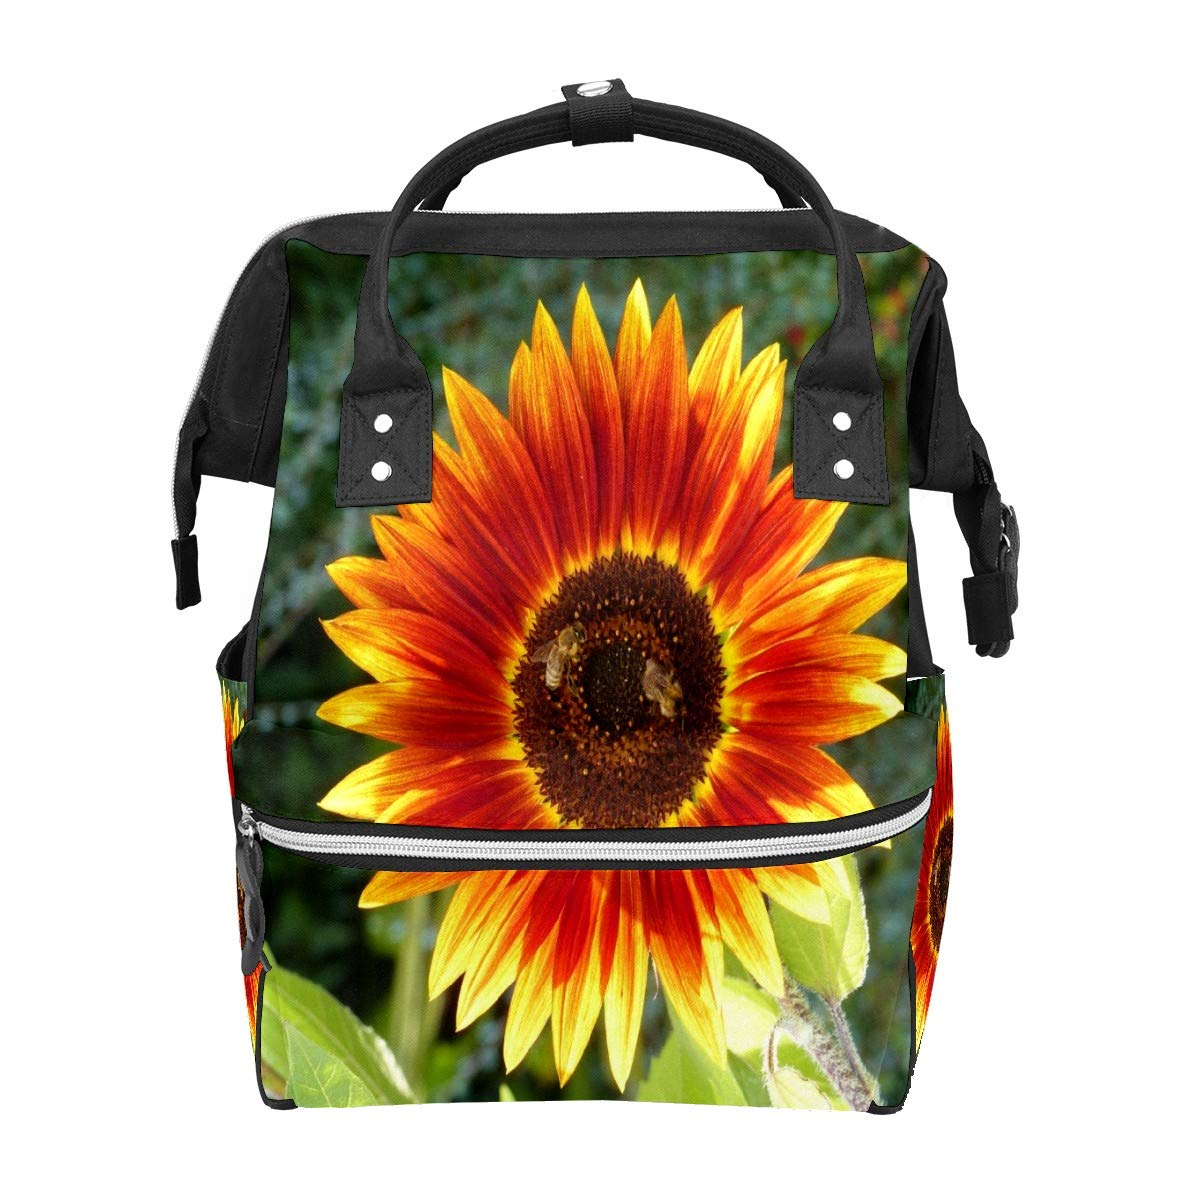 Diaper Bag Backpack Flower Sunflowers Summer Multifunction Travel Back Pack Baby Changing Bags Large Capacity Waterproof Stylish